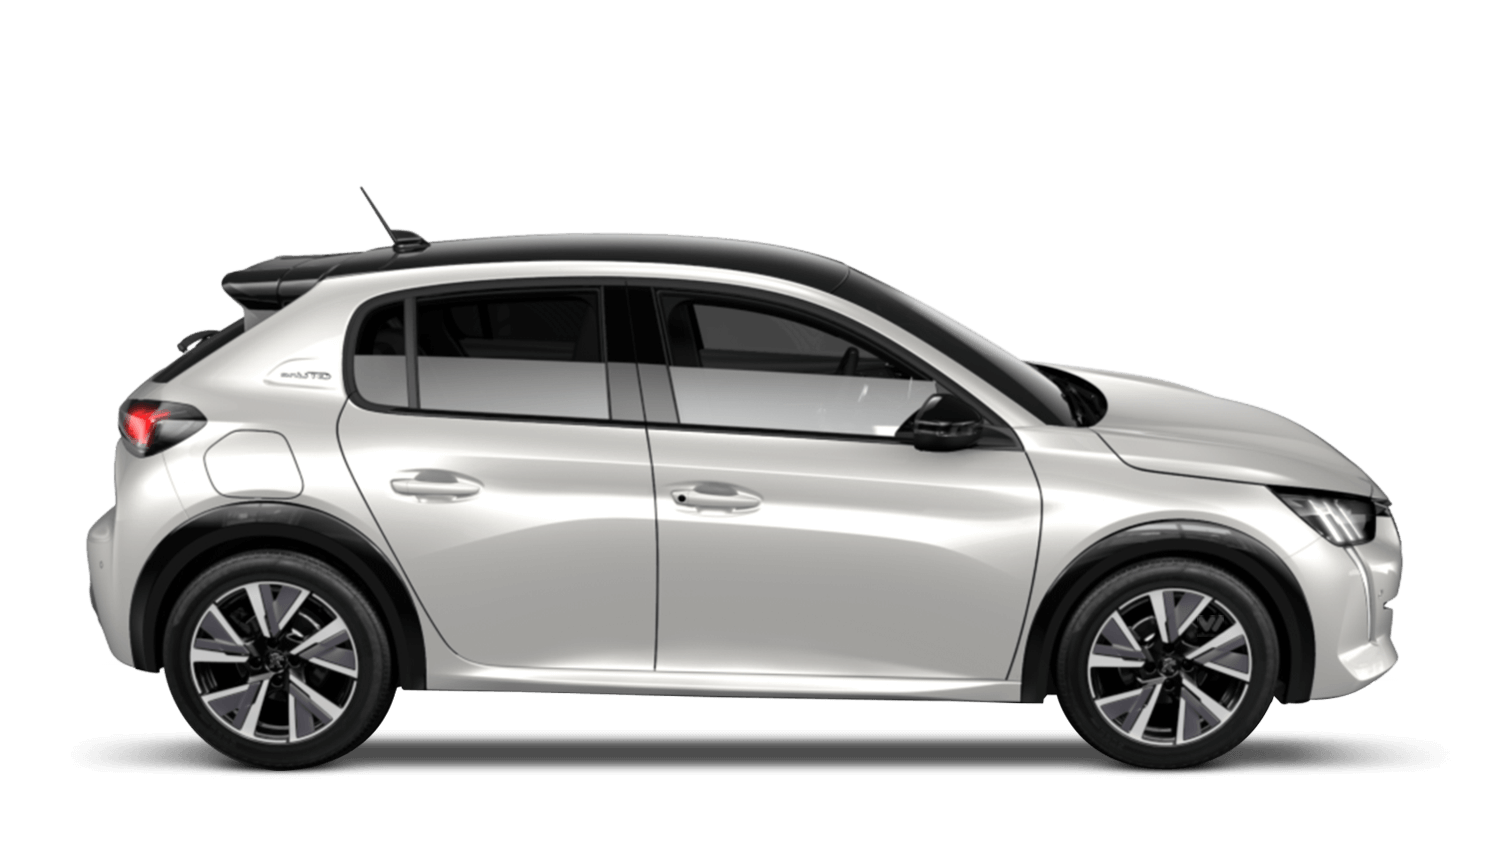 Pearlescent White All-new Peugeot 208